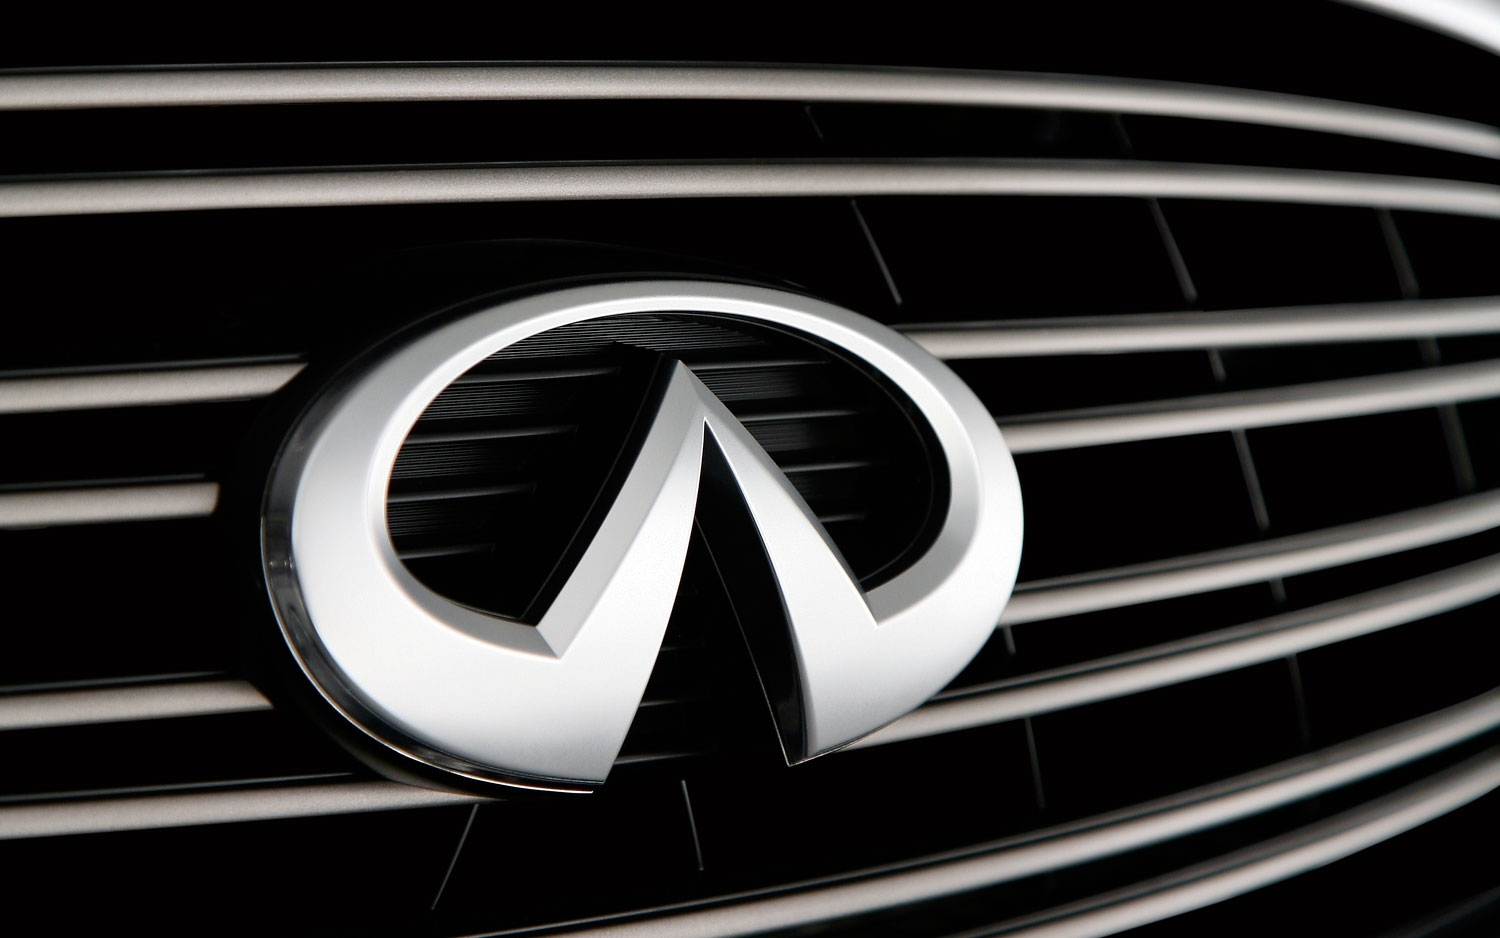 infiniti logo wallpaper. infiniti logo on the car wallpaper